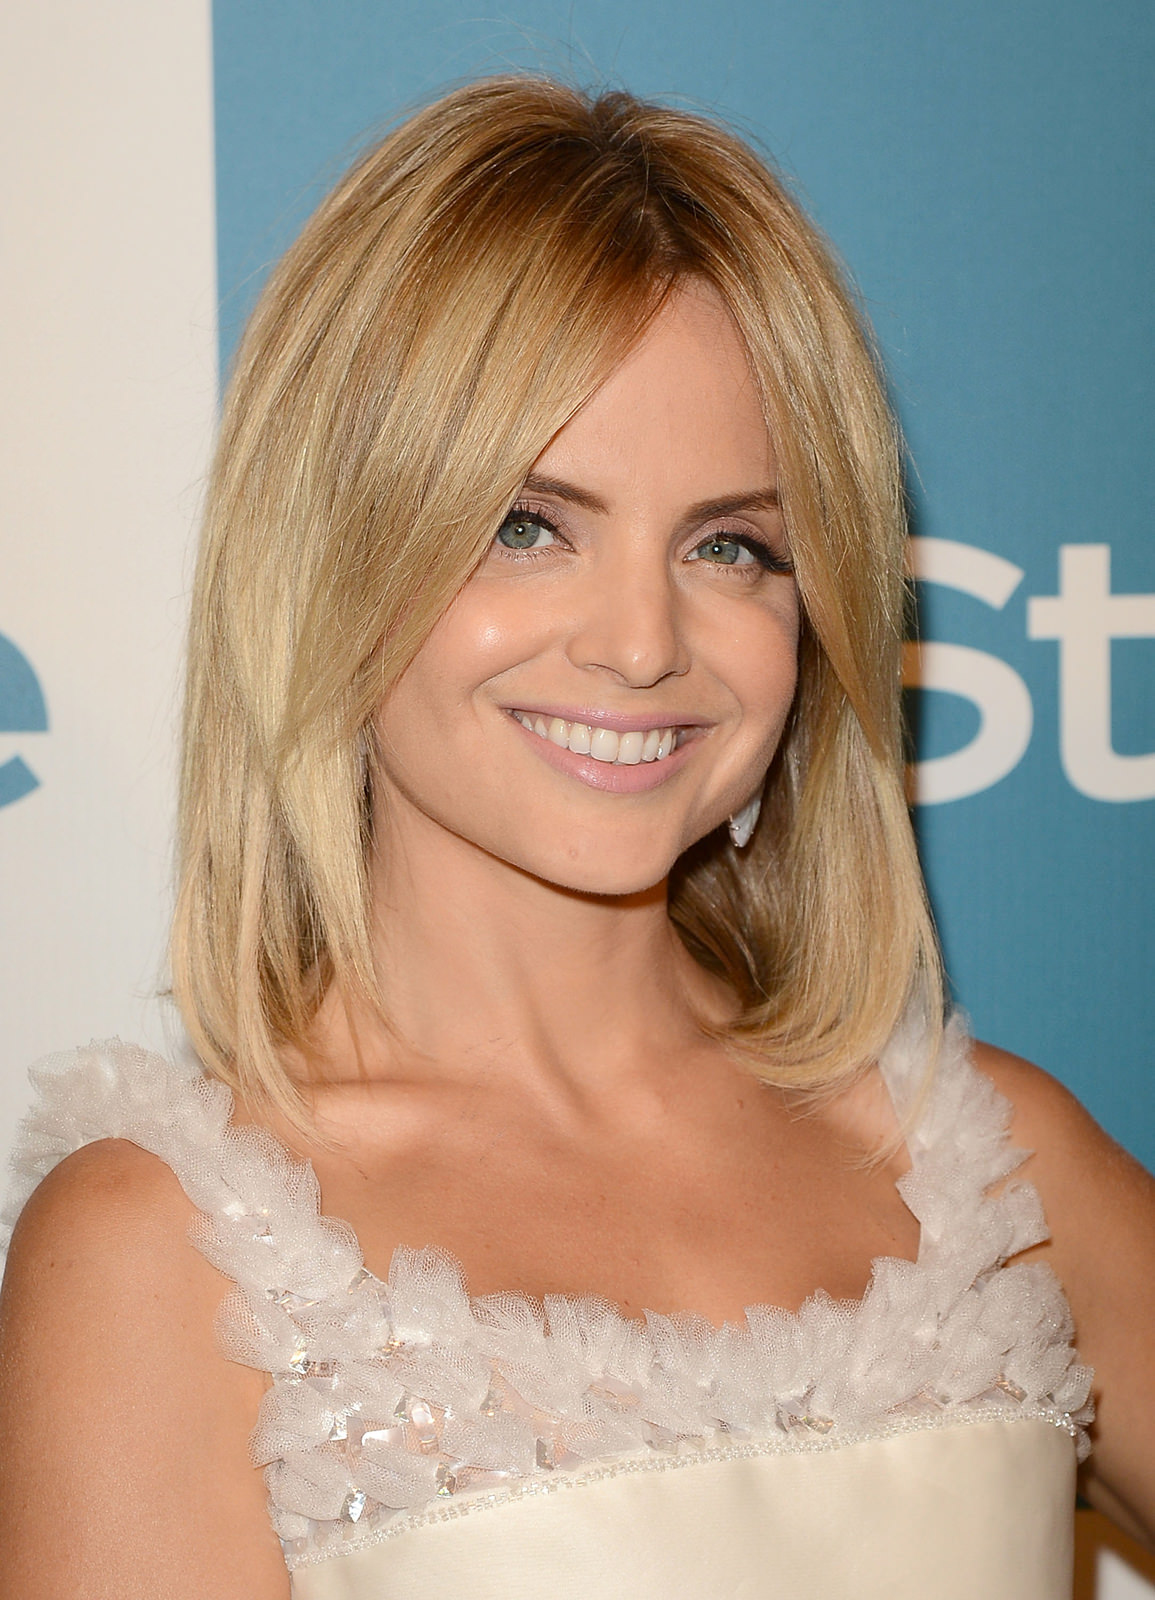 Mena Suvari Photo Gallery